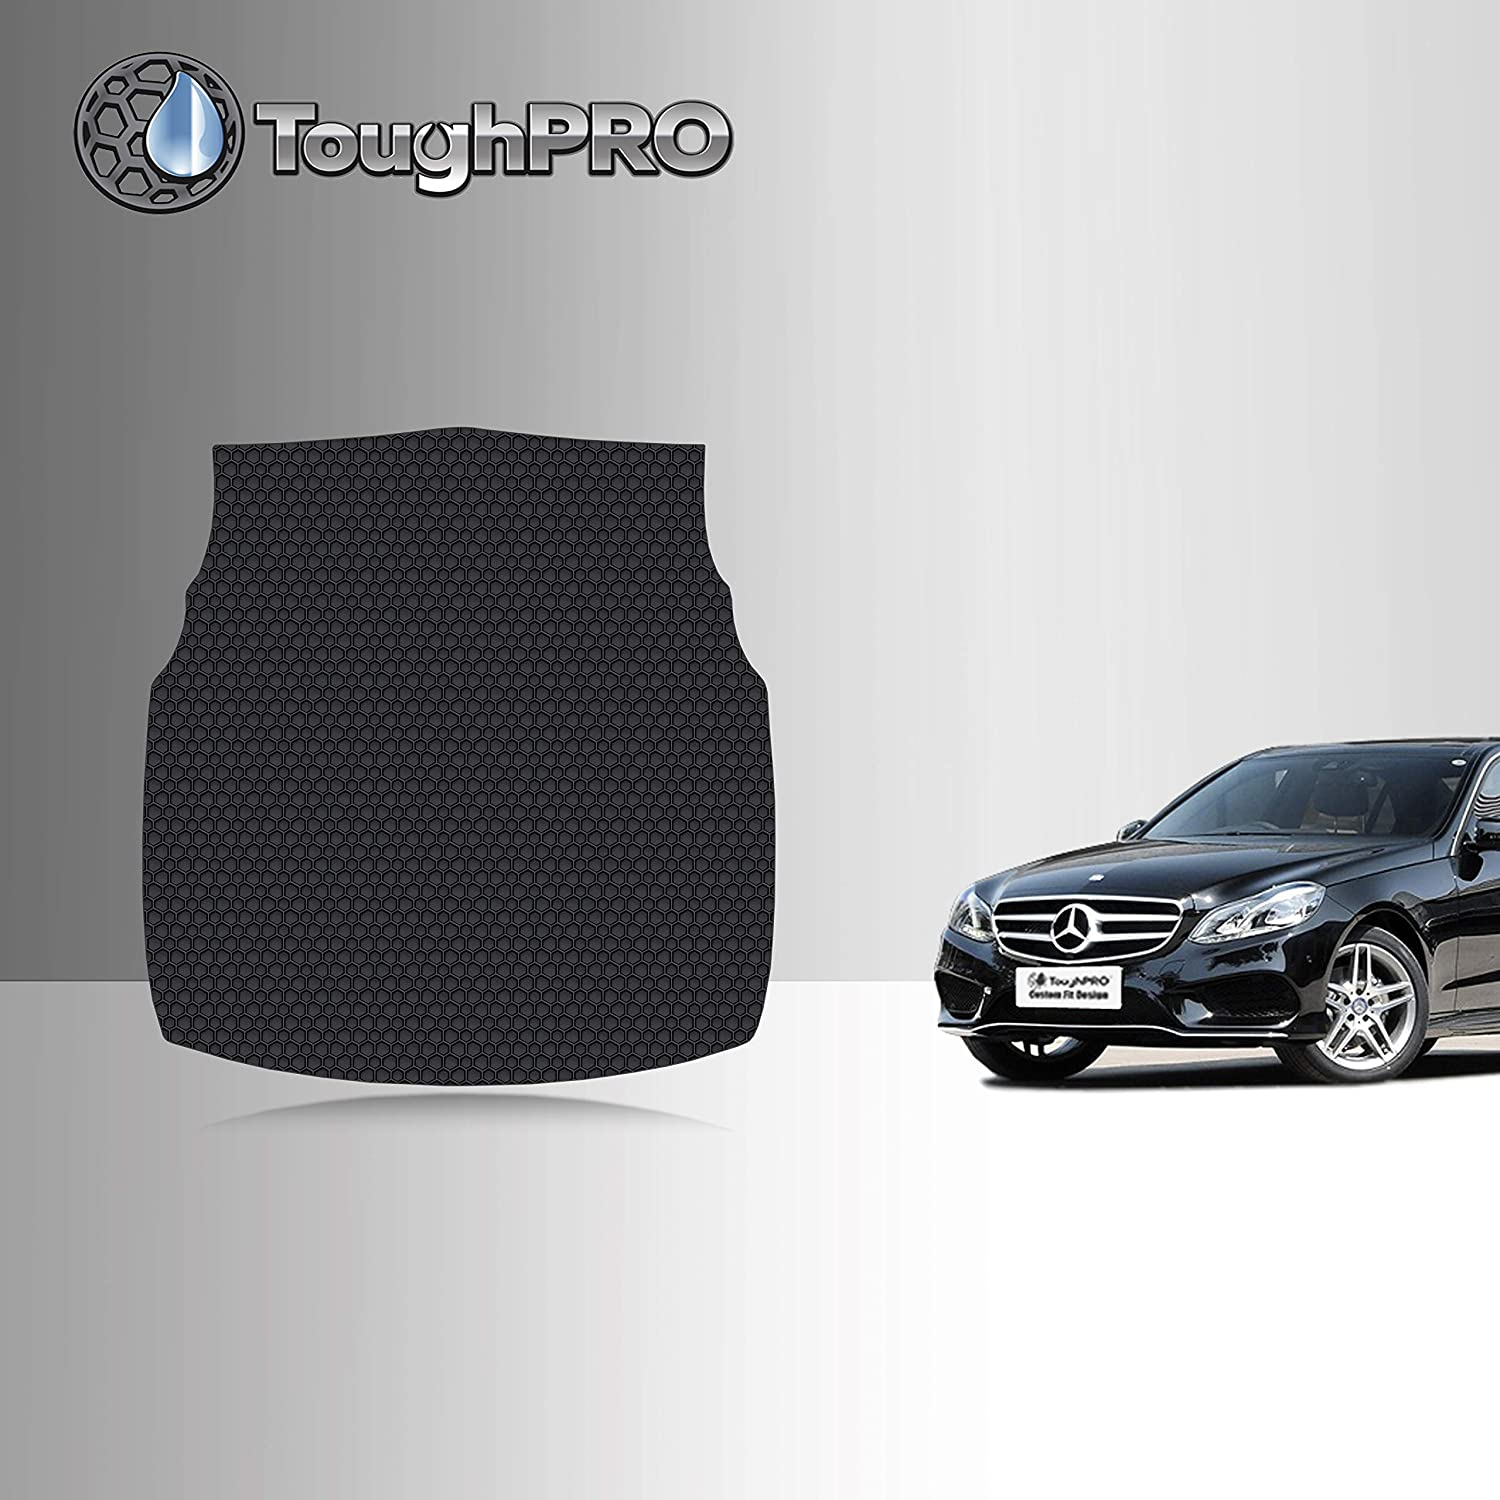 TOUGHPRO Cargo/Trunk Mat Accessories Compatible with Mercedes-Benz E300 / E350 - All Weather - Heavy Duty - (Made in USA) - Black Rubber - 2010, 2011, 2012, 2013, 2014, 2015, 2016